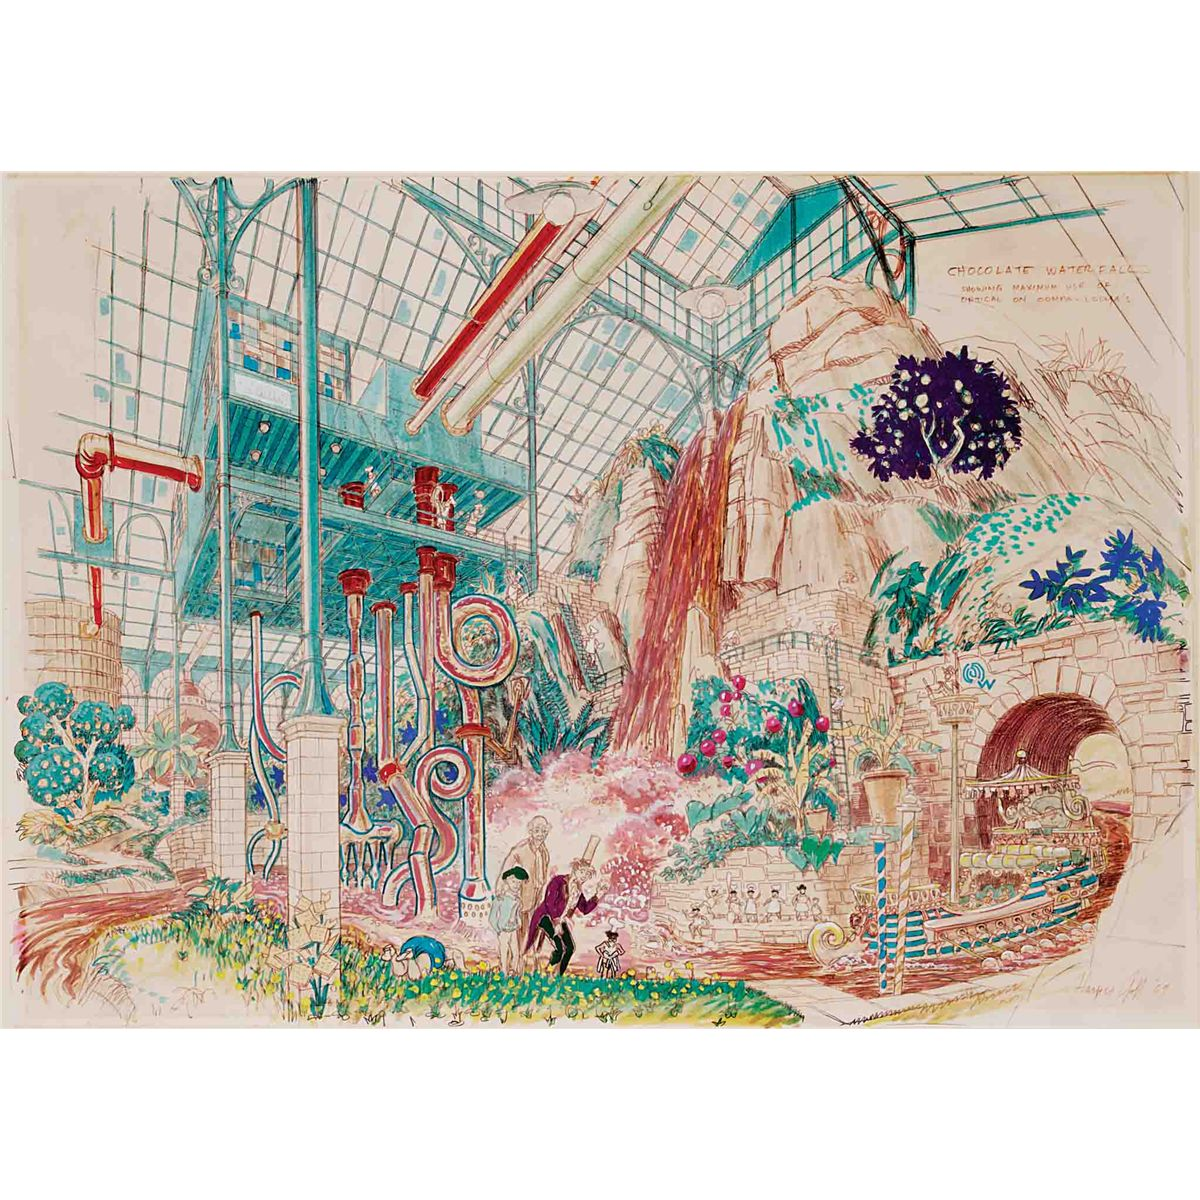 original harper goff published artwork for the chocolate room in original harper goff published artwork for the chocolate room in willy wonka the chocolate factory